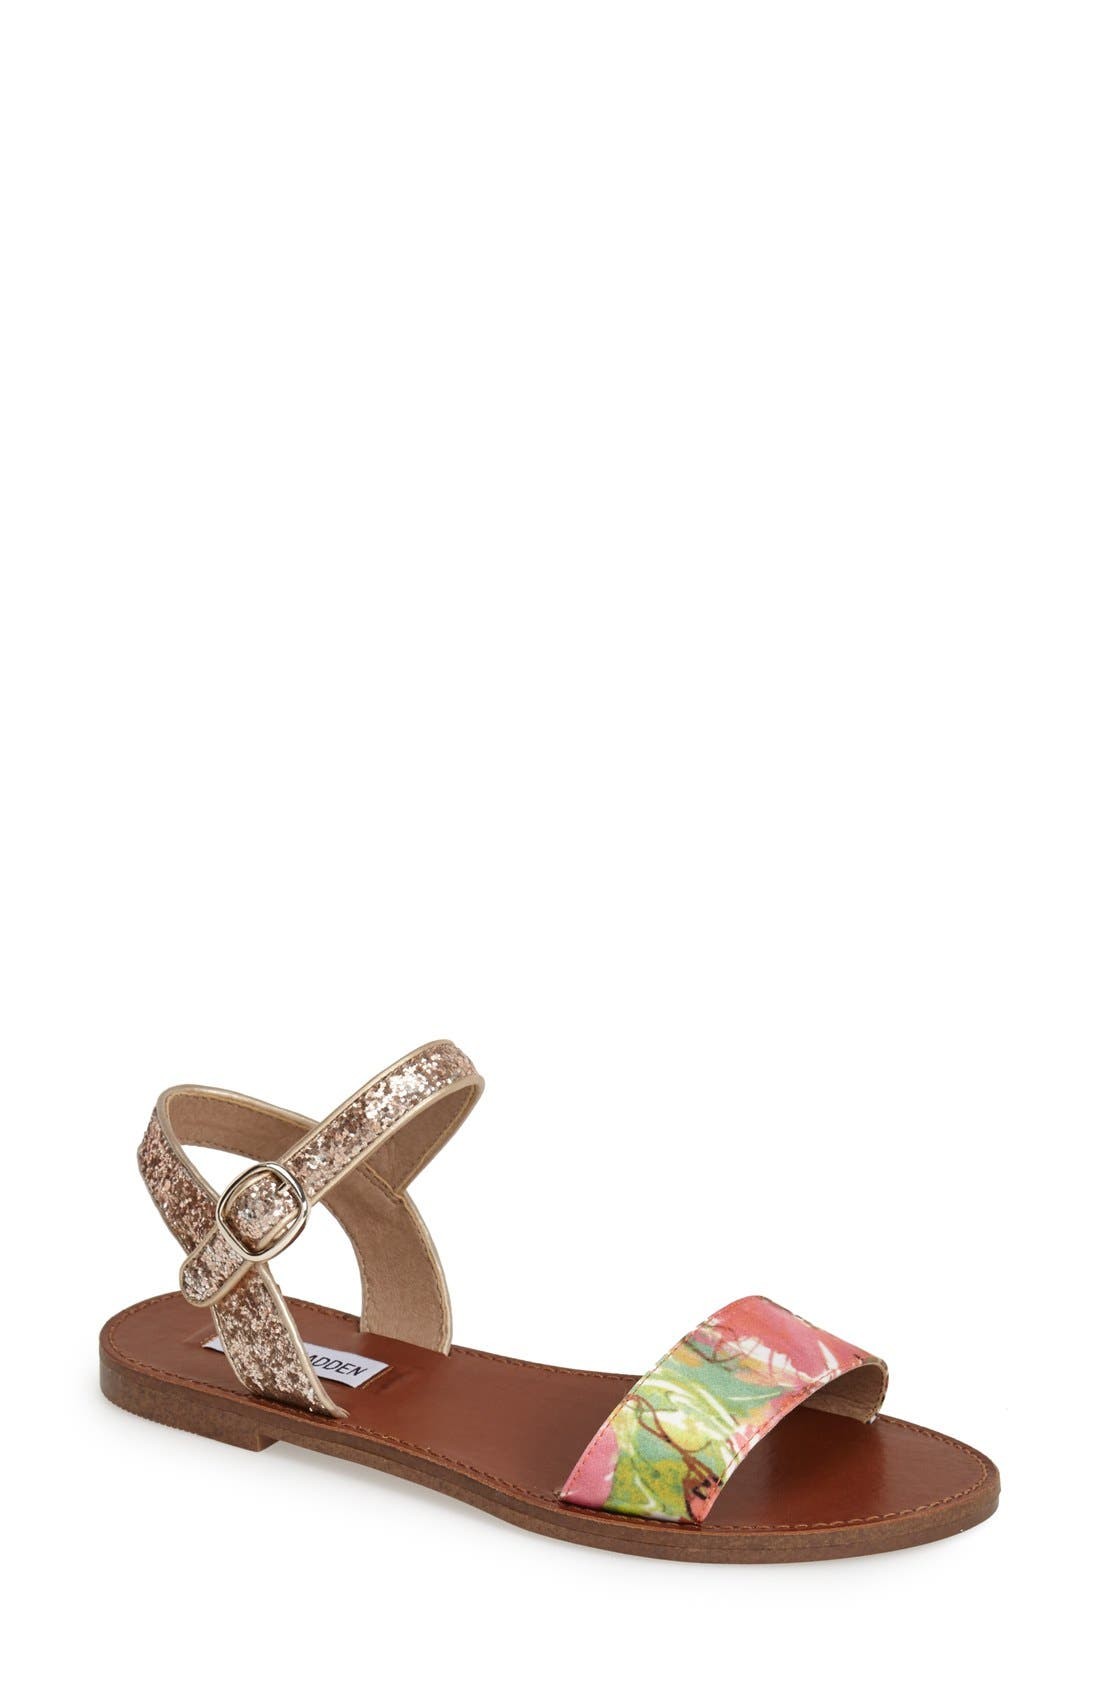 Alternate Image 1 Selected - Steve Madden 'Donddi' Ankle Strap Sandal (Women)